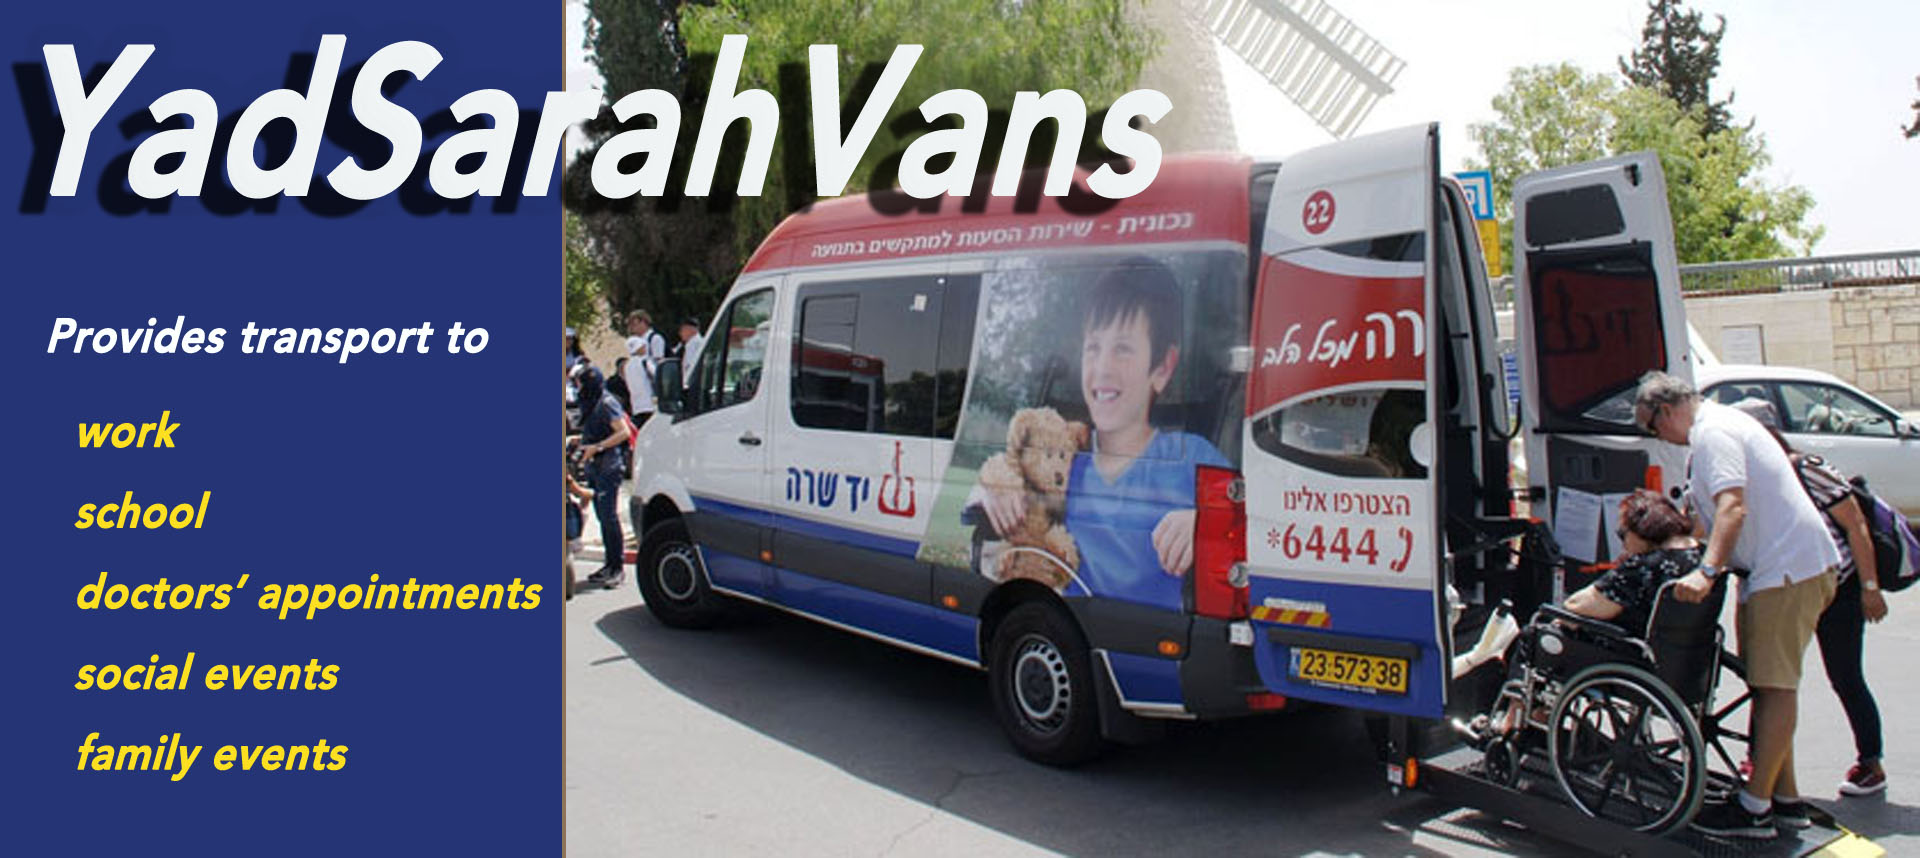 Bright red, white and royal vans with an image of a little boy holding a teddy bear at the ready to transport their clients anywhere they have to go